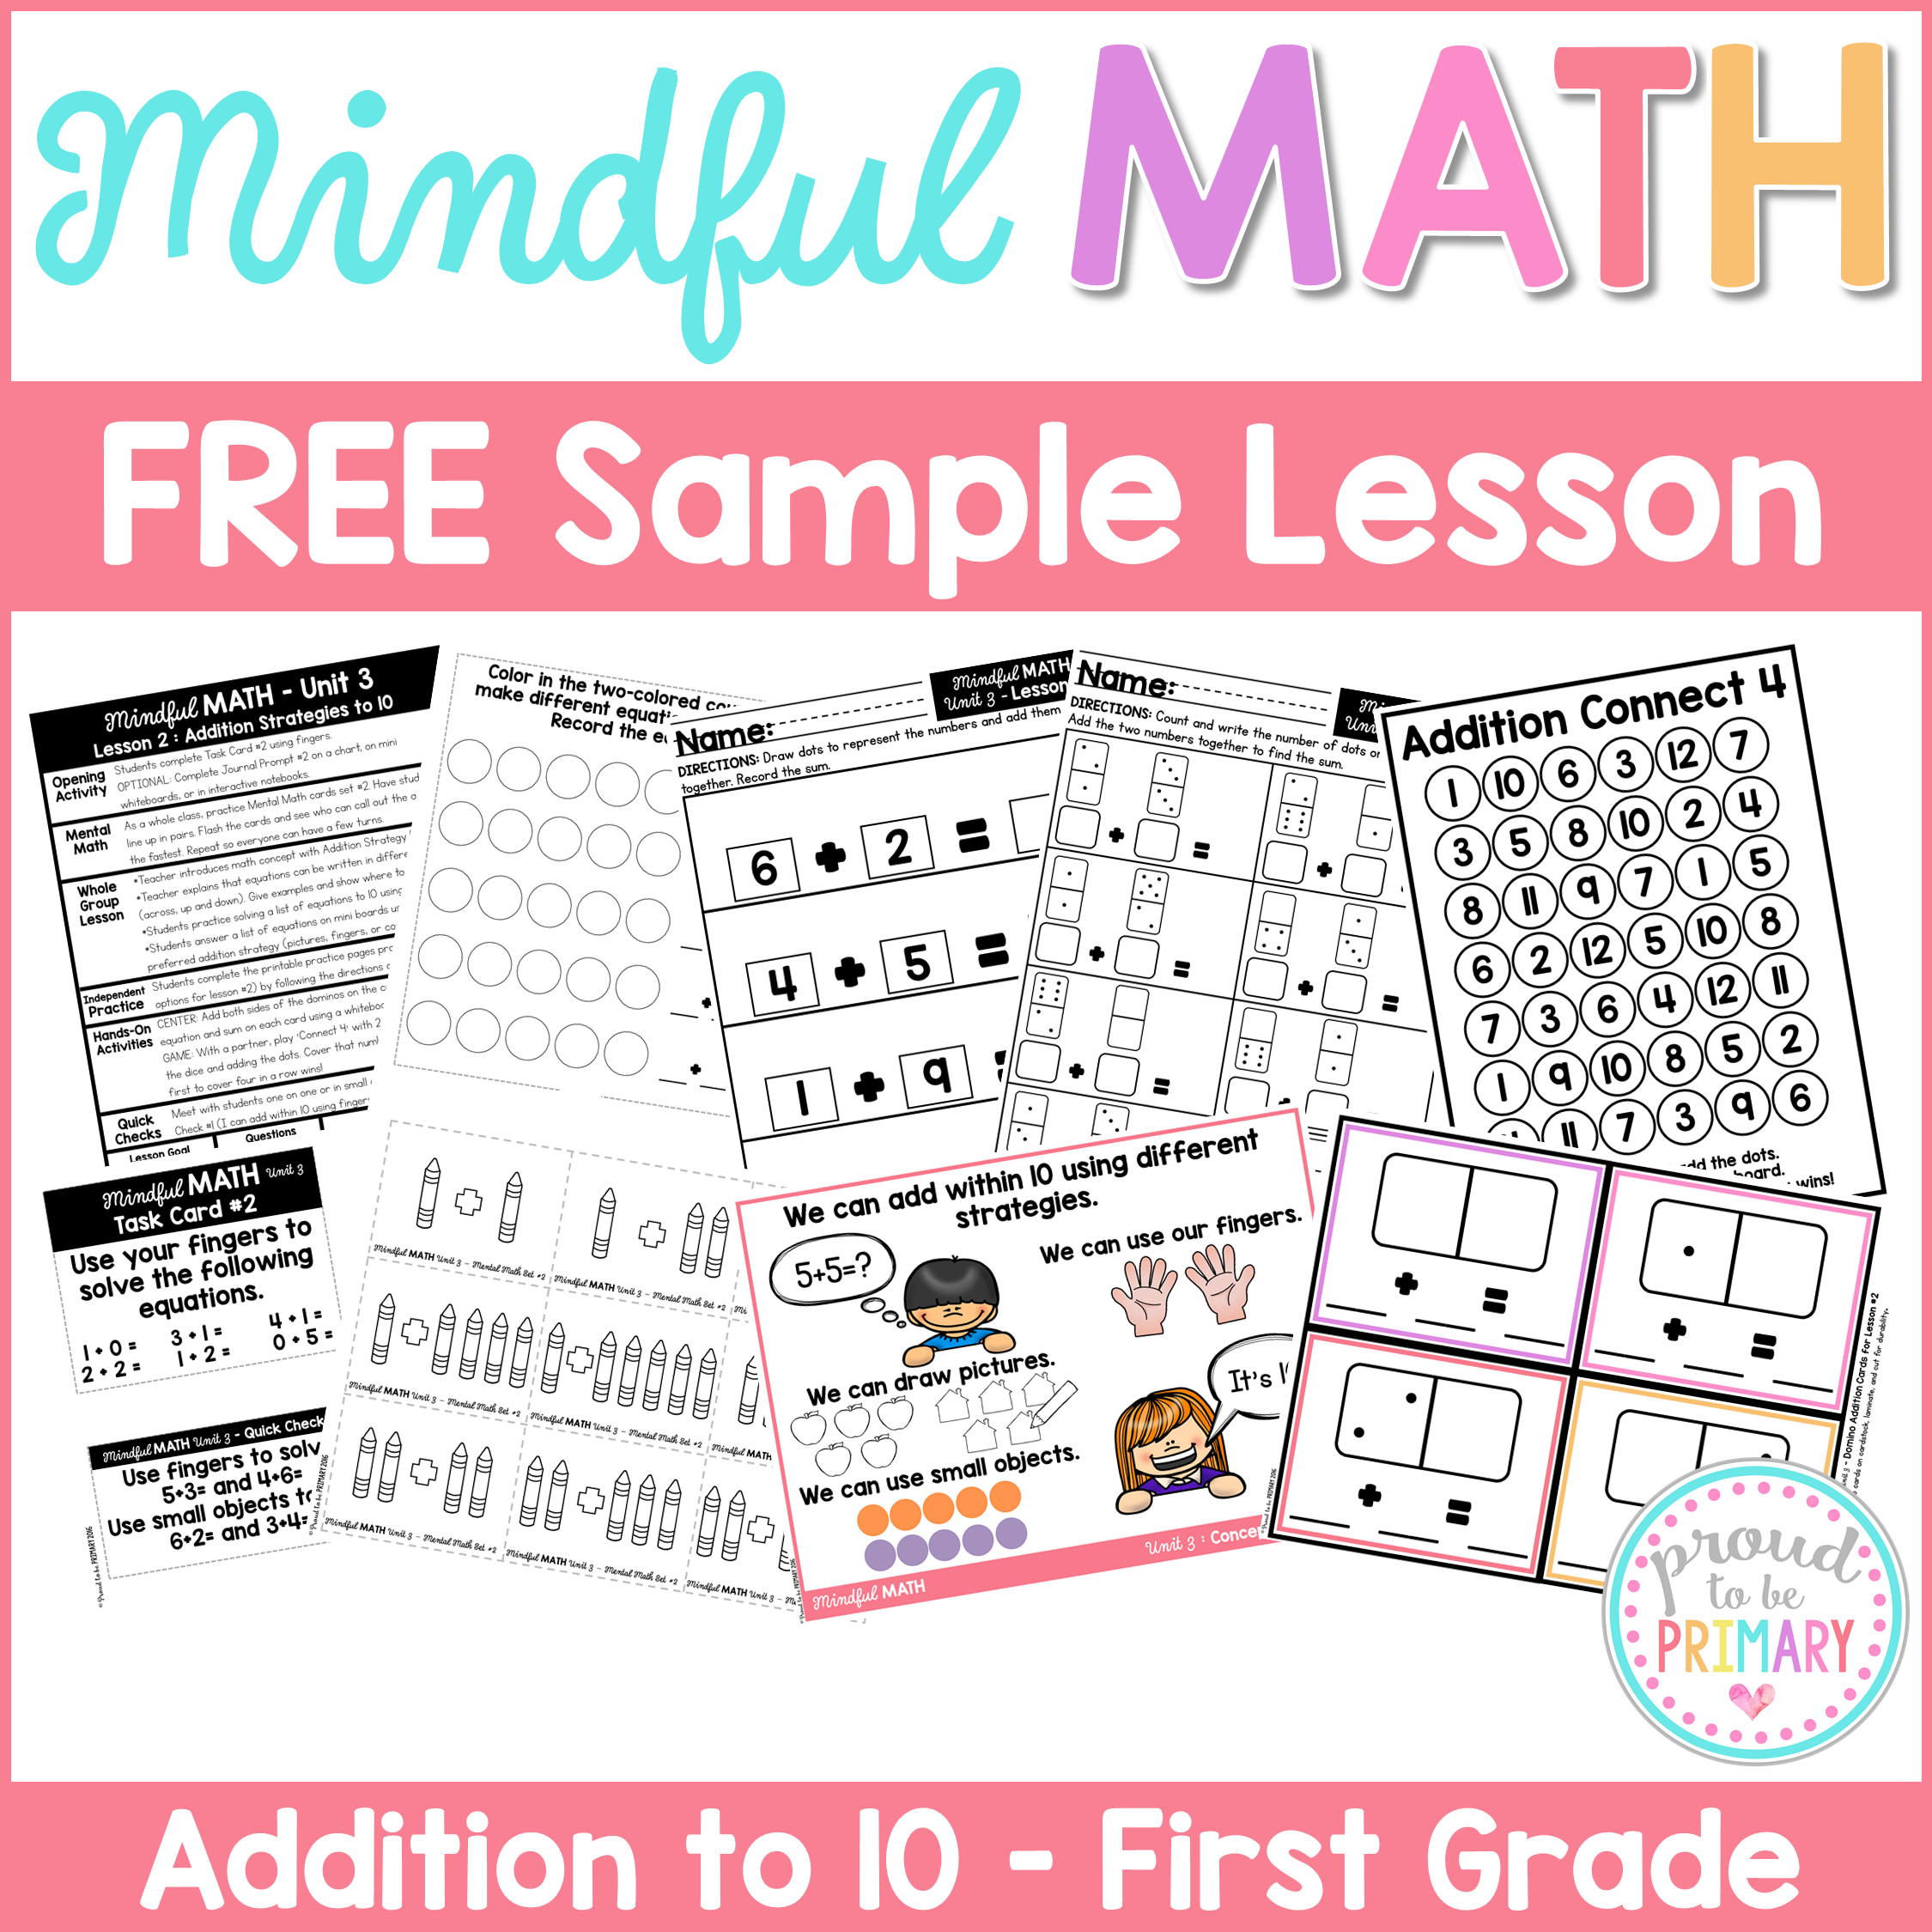 mindful math program free sample lesson